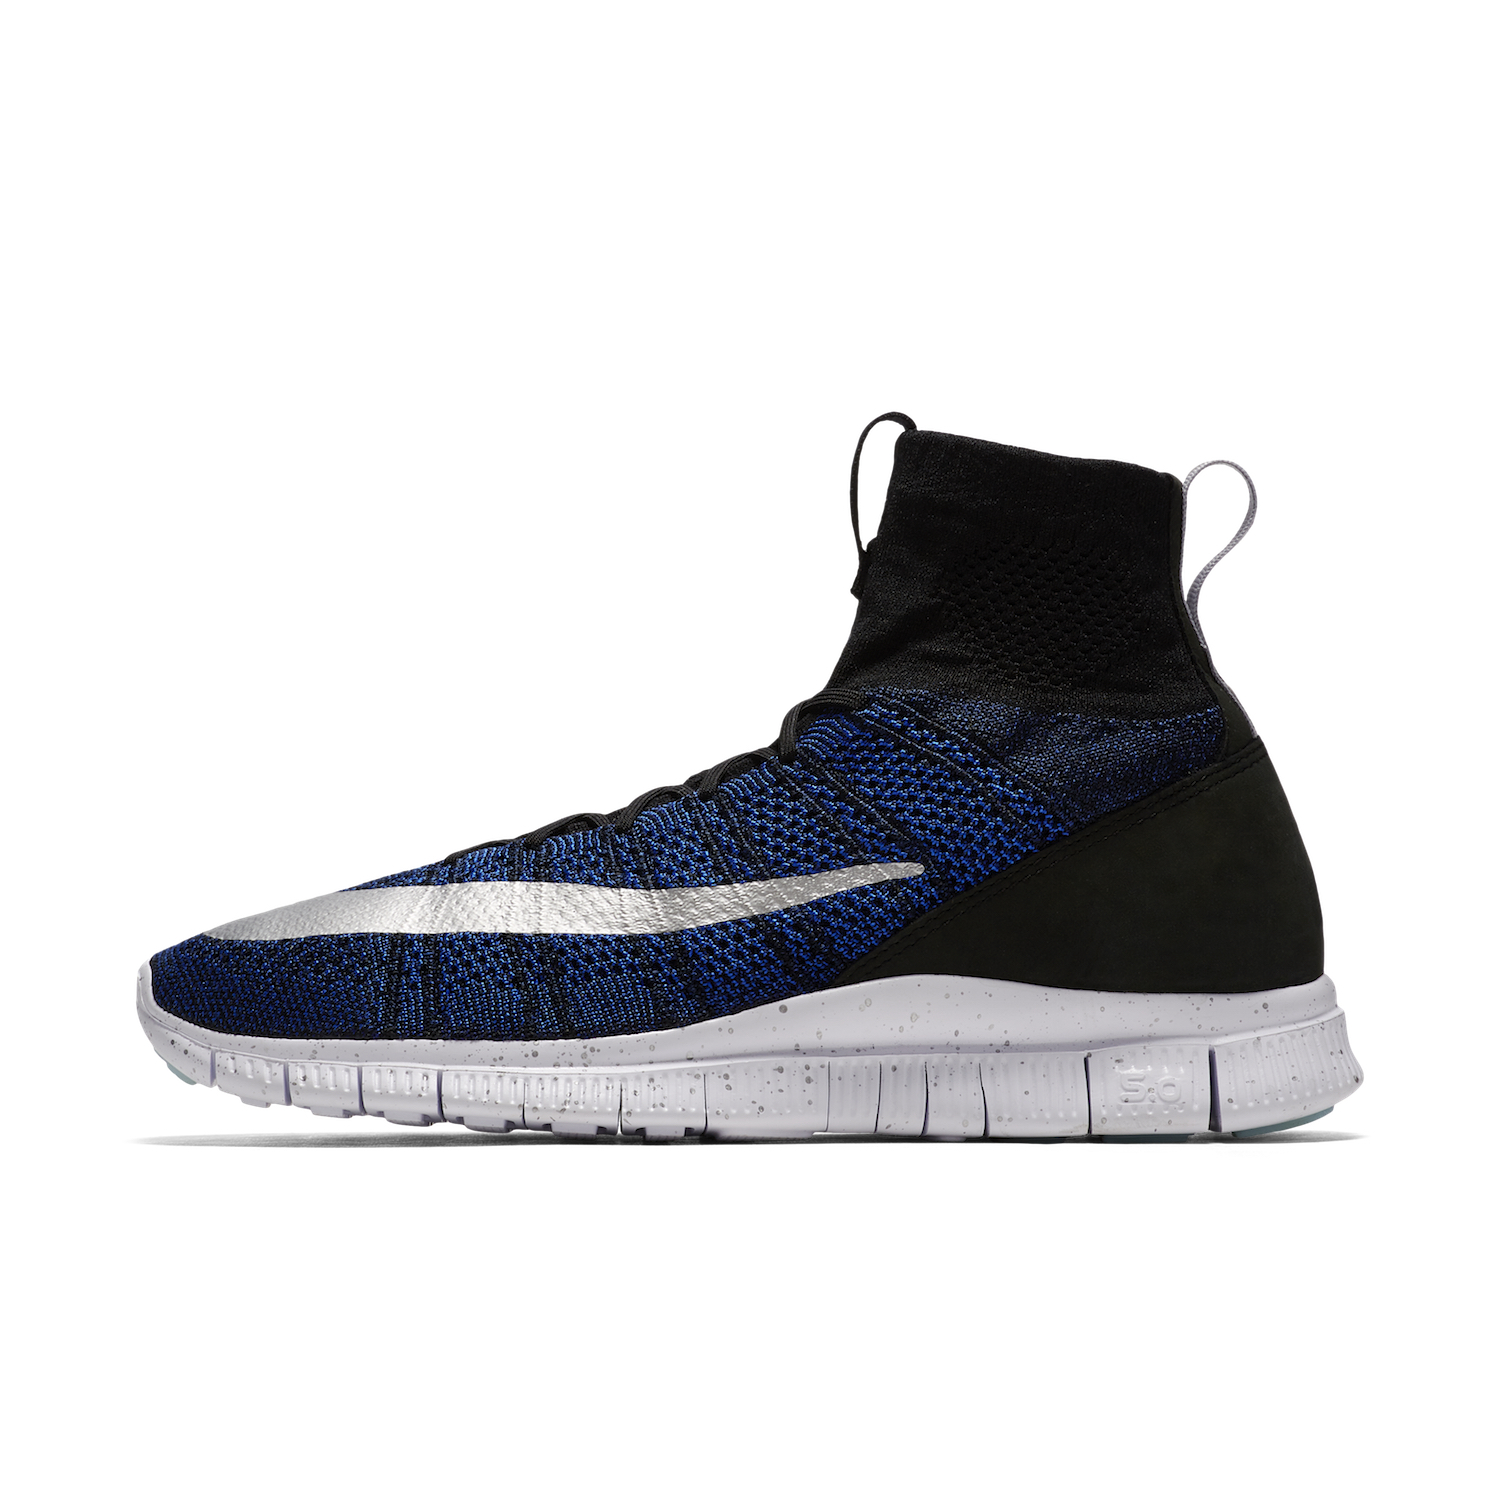 cr7 nike free mercurial superfly 5 weartesters. Black Bedroom Furniture Sets. Home Design Ideas